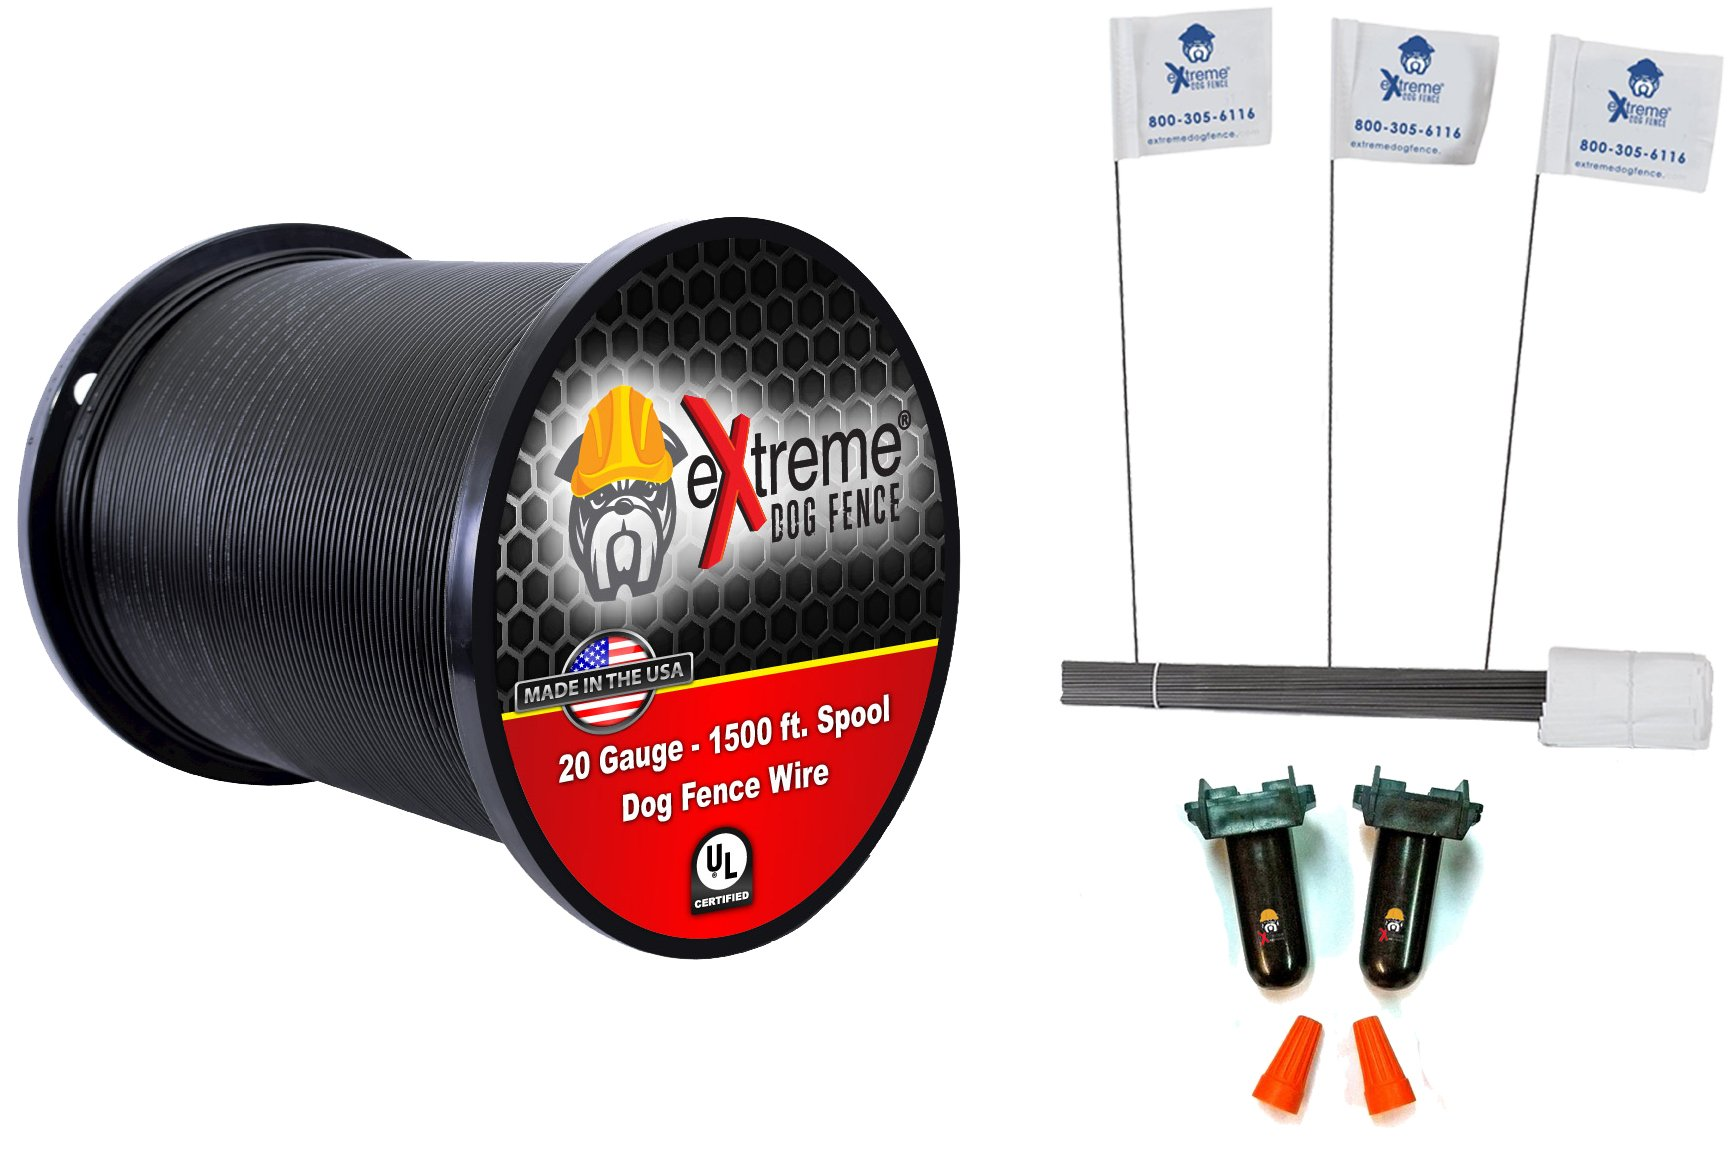 20 Gauge Wire 1500 Kit - Pet Containment Wire Setup Kit Compatible with EVERY In-Ground Fence System for Dogs - Includes 6 Splices and 150 Training Flags Bundle